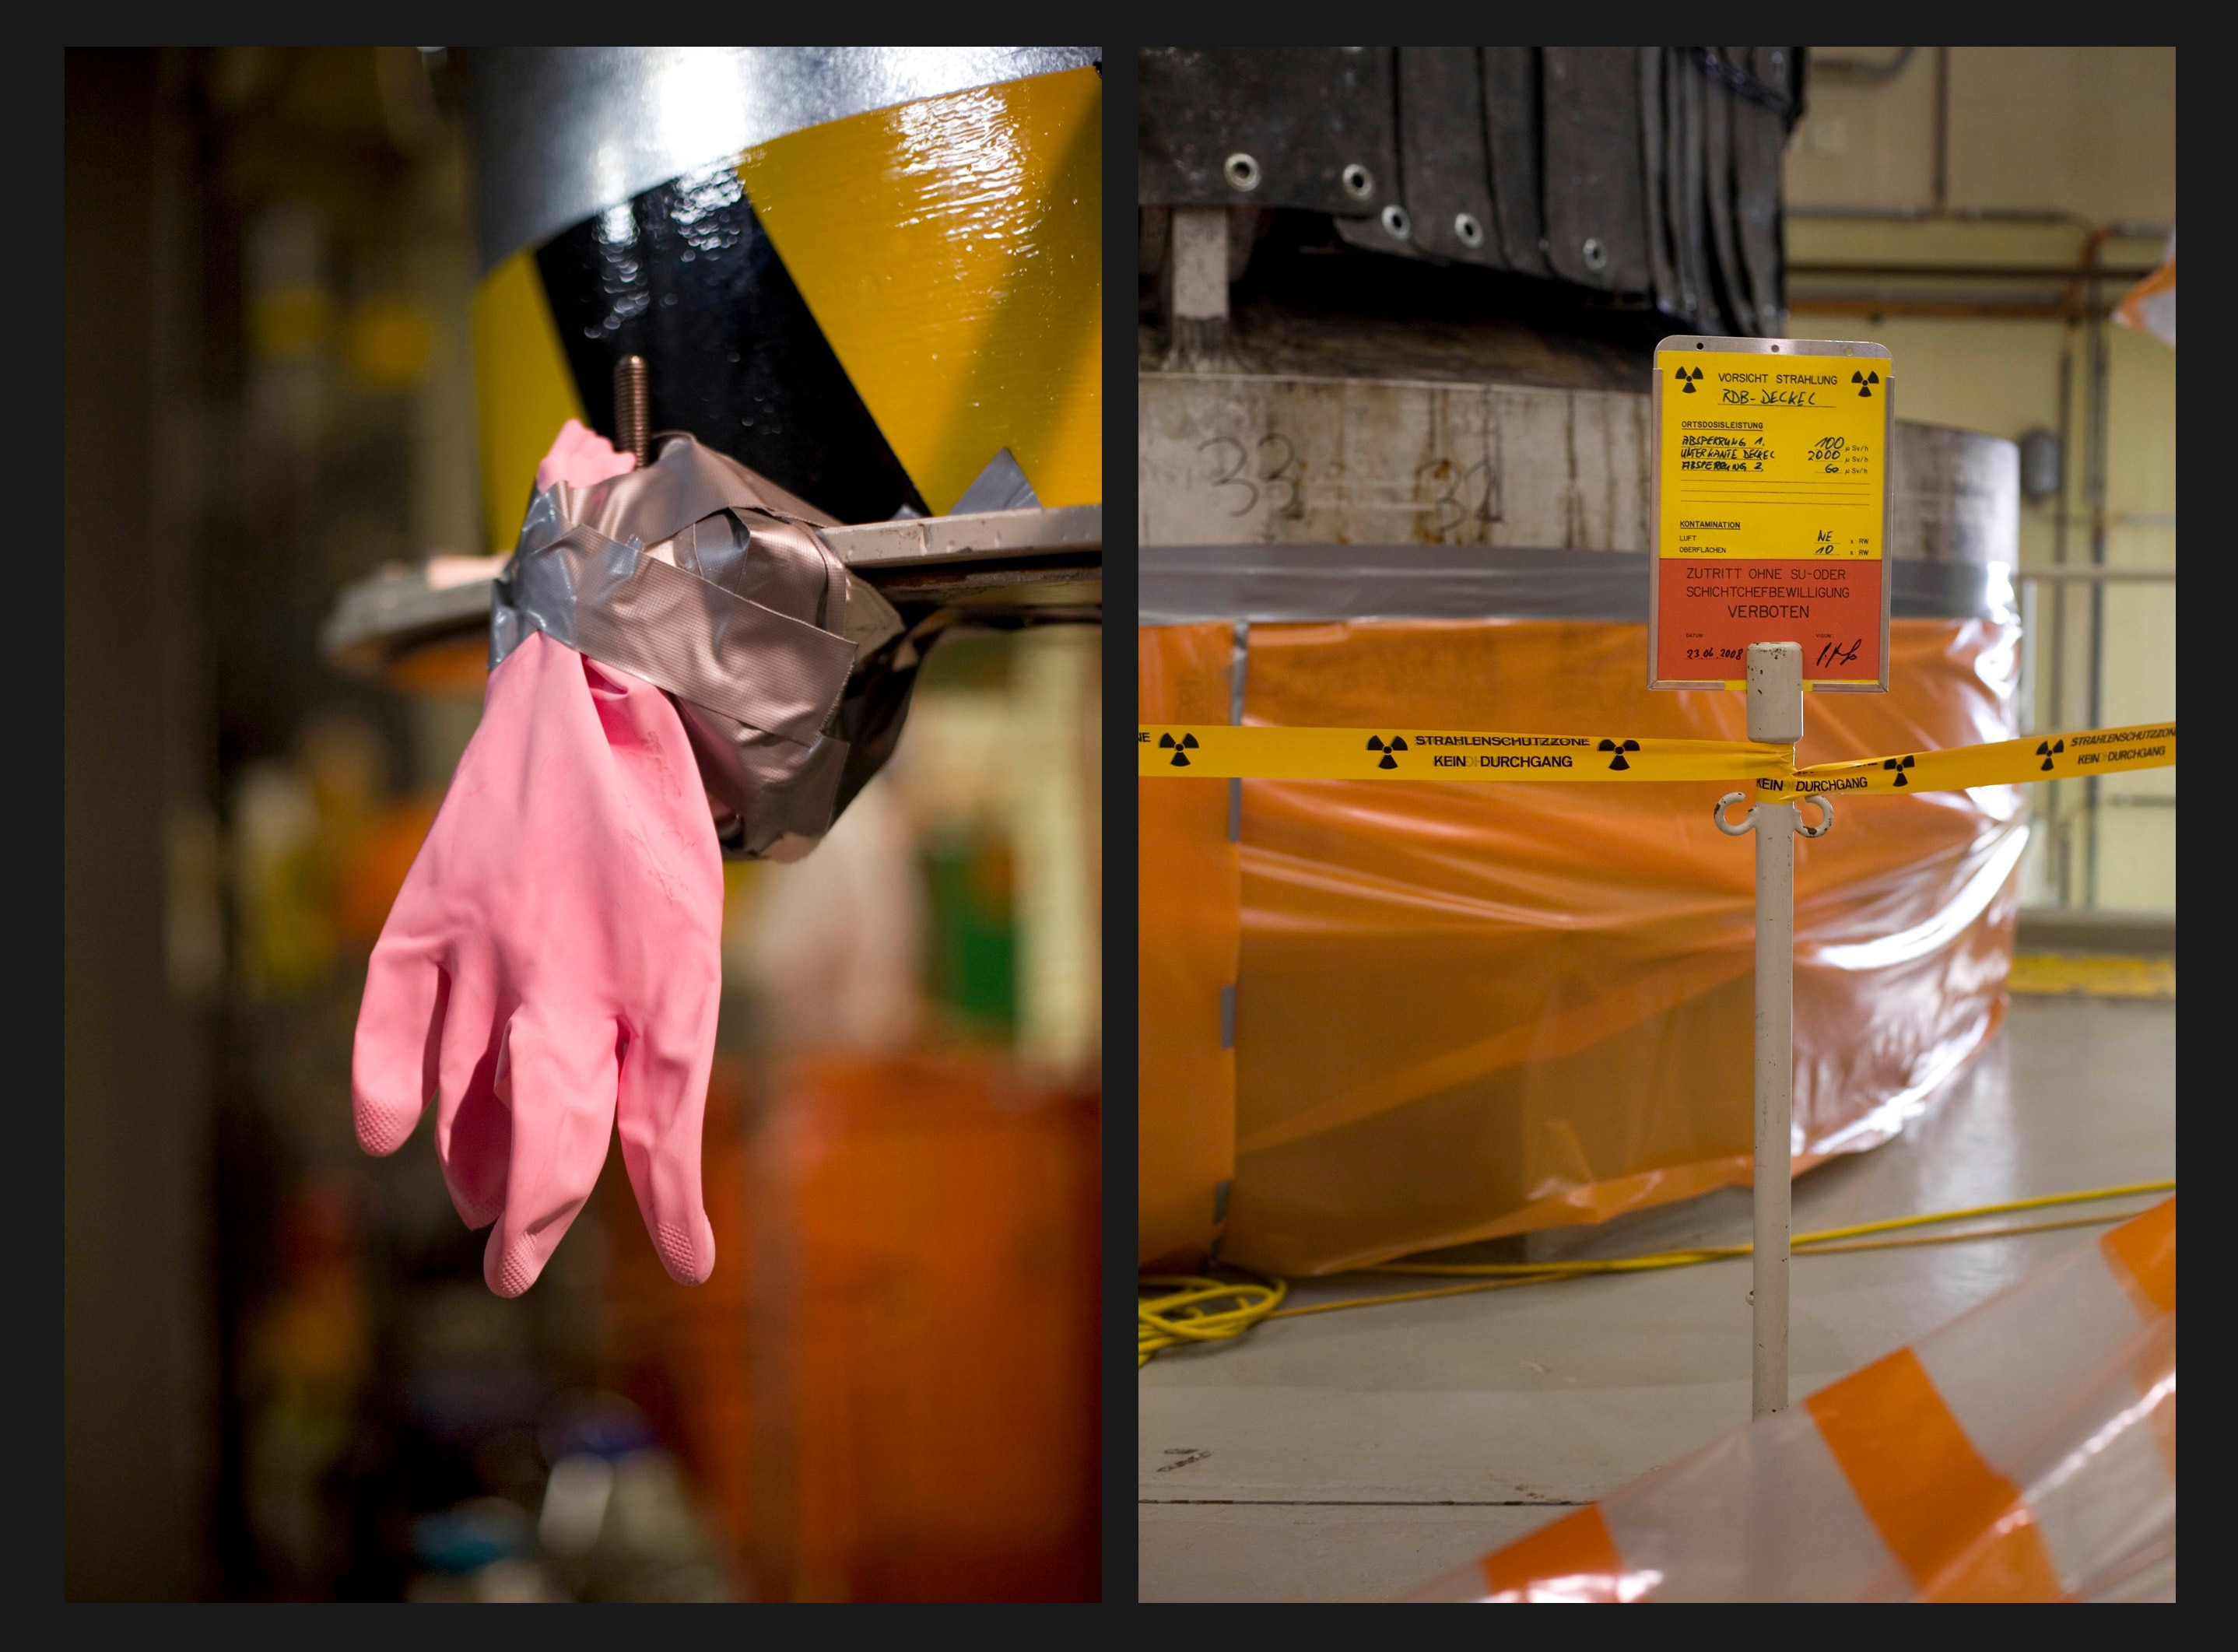 Rubber gloves for additonal protection and marking tape for areas with potentially higher radioactivity in the reactor zone.